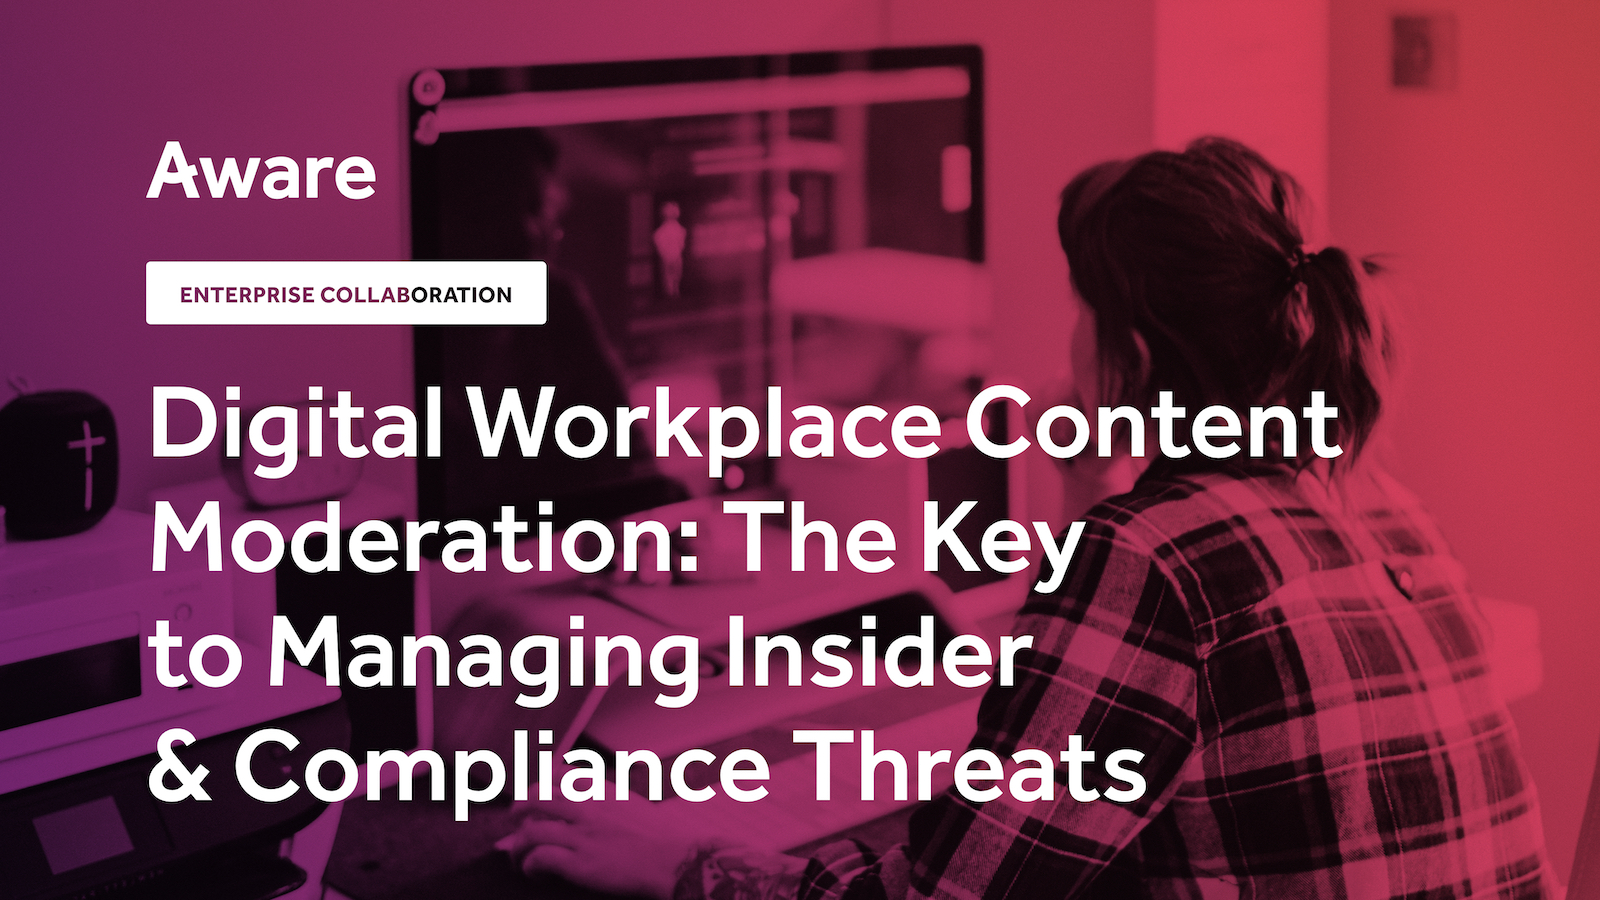 Digital Workplace Content Moderation: The Key to Managing Insider & Compliance Threats